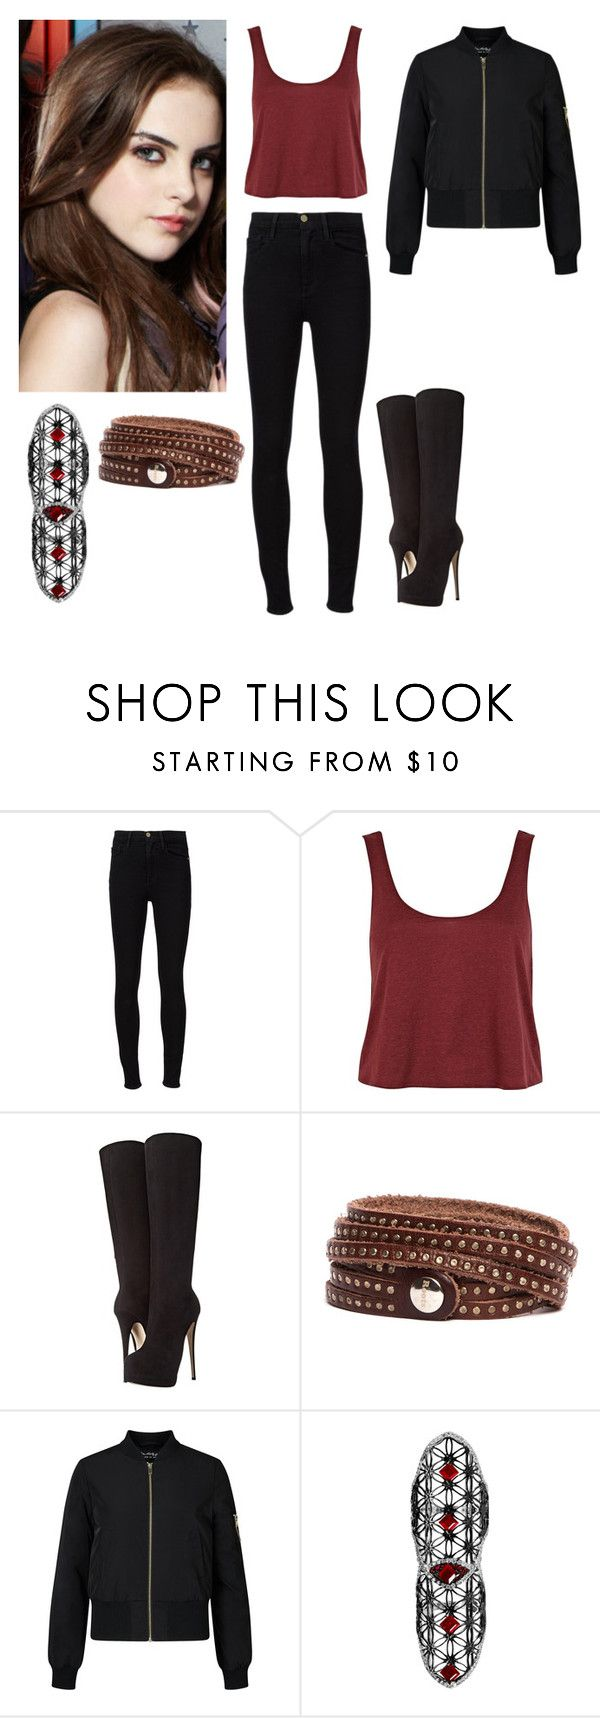 """""""Jade West"""" by charmedgreys ❤ liked on Polyvore featuring Frame, River Island, Giuseppe Zanotti, Roots, Miss Selfridge and Dionea Orcini"""